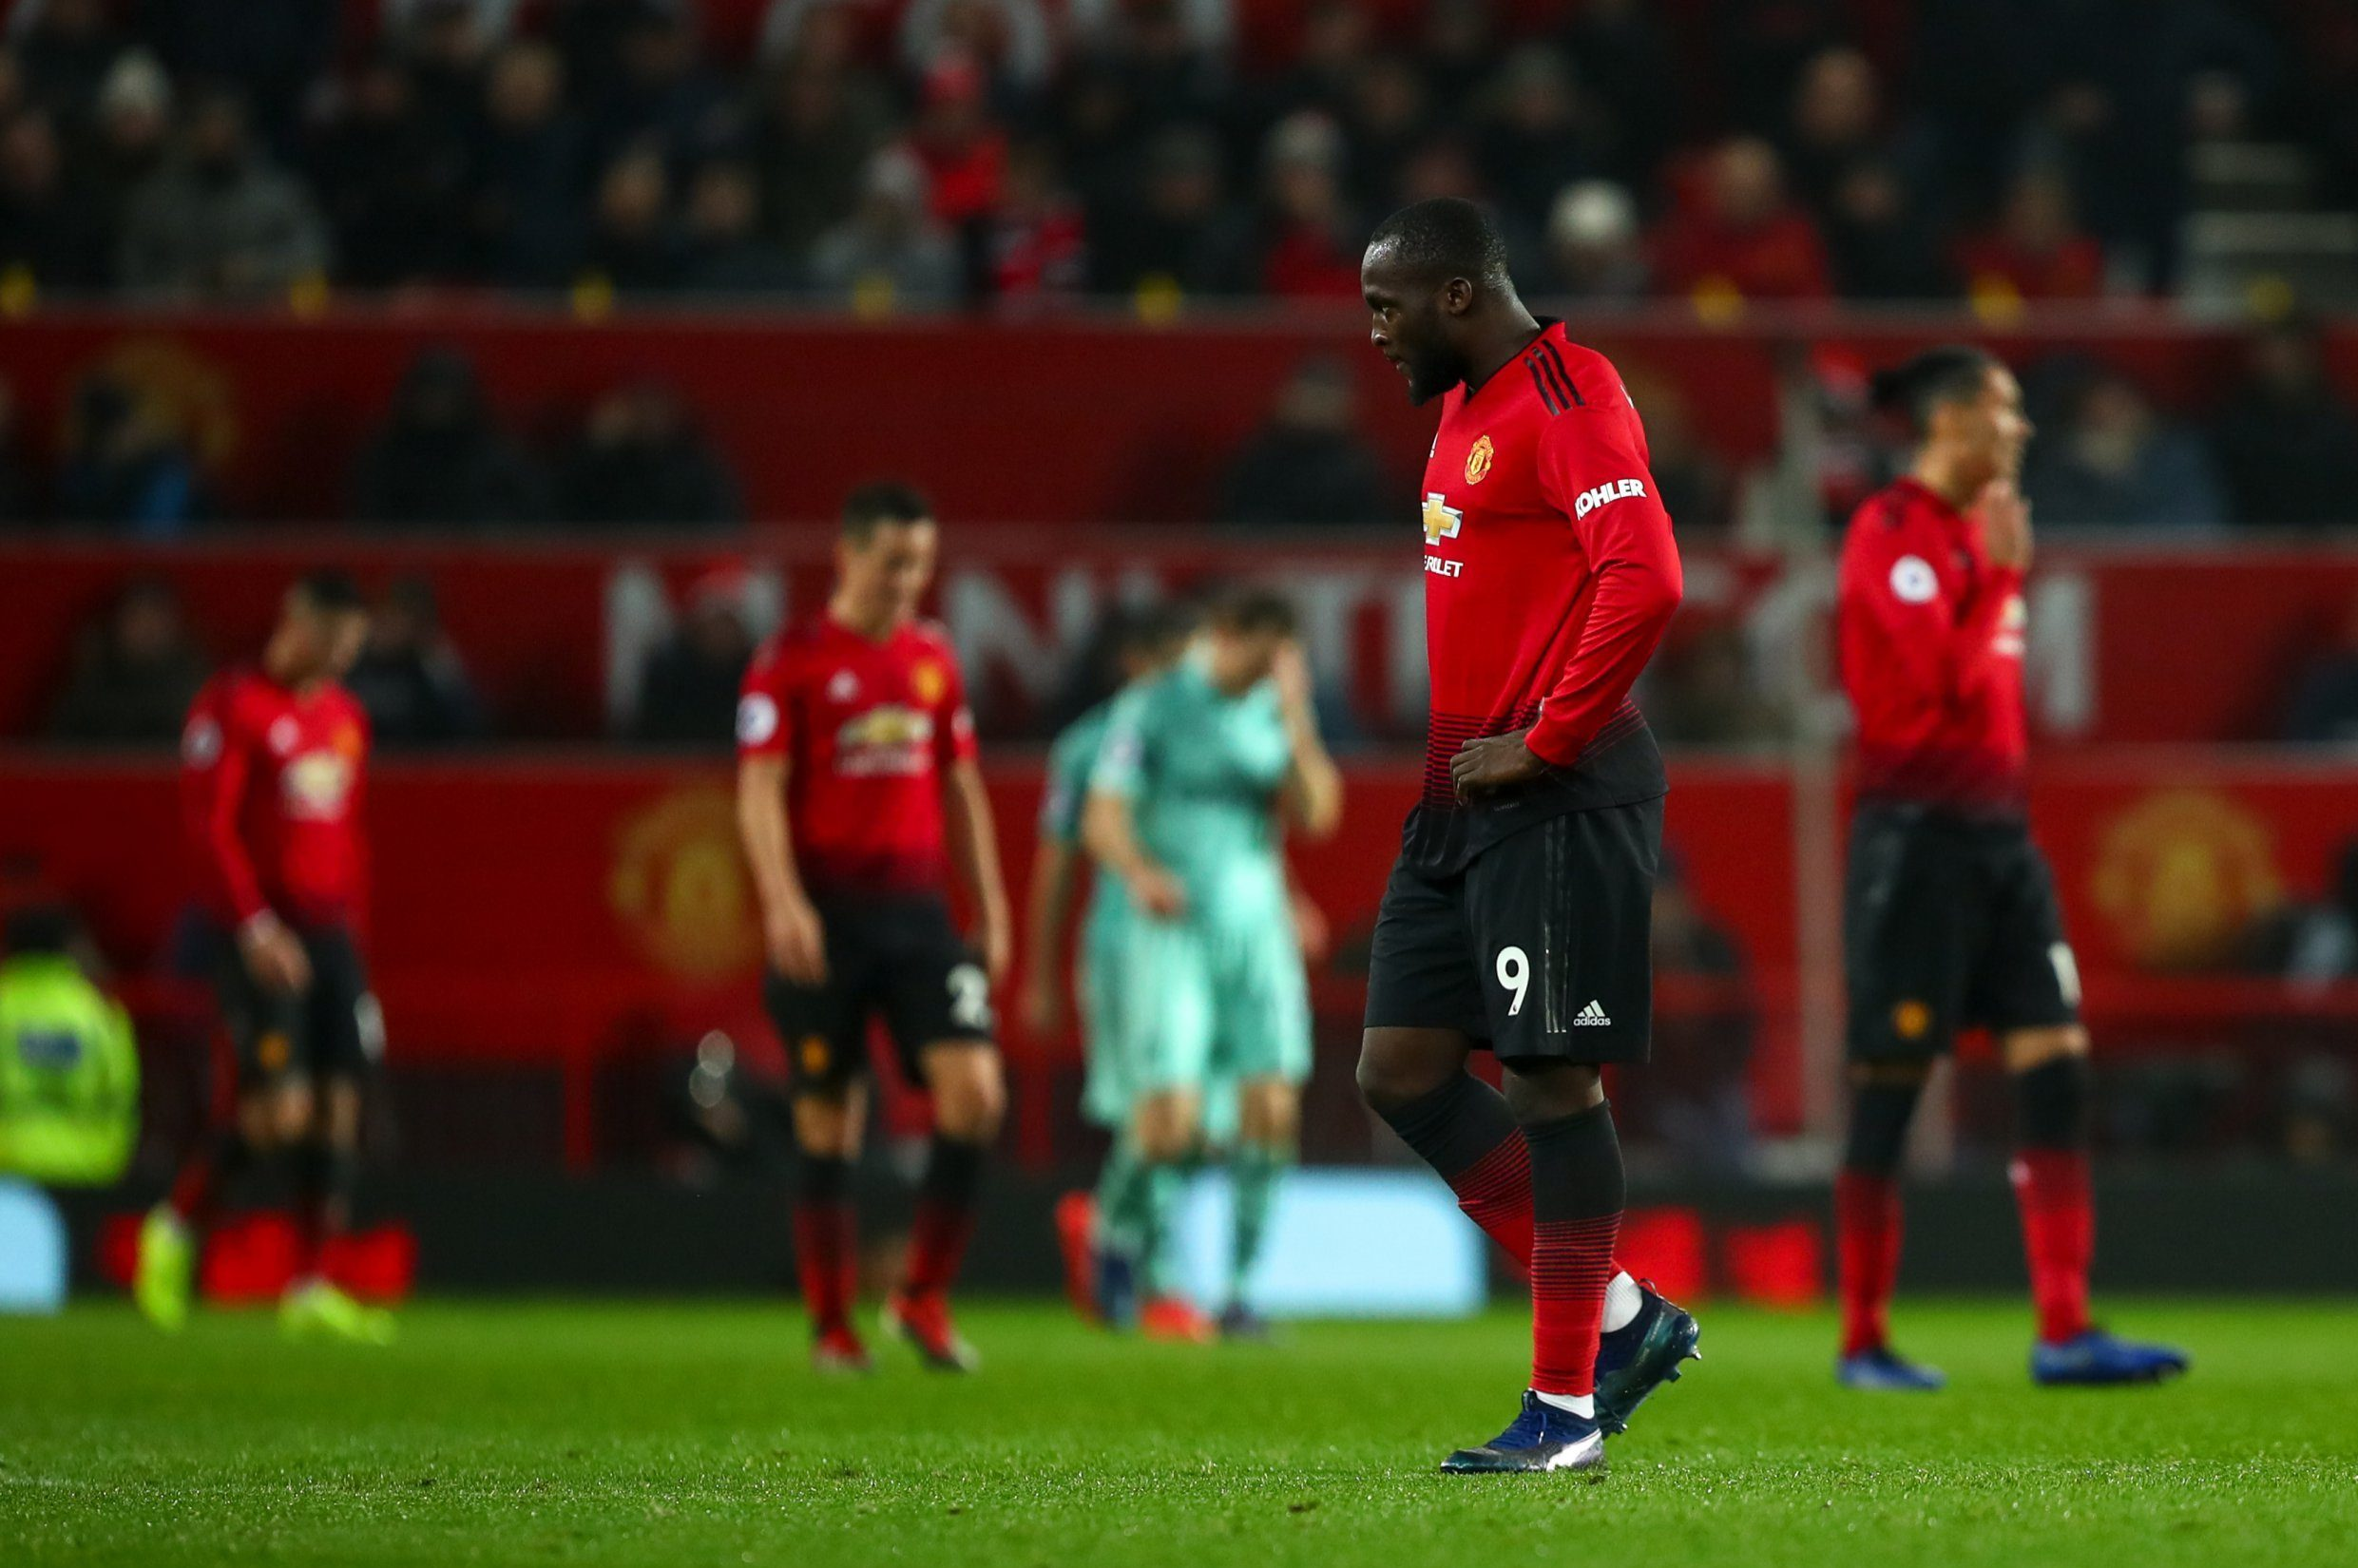 MANCHESTER, ENGLAND - DECEMBER 05: A dejected Romelu Lukaku of Manchester United reacts after conceding a goal to make it 1-2 during the Premier League match between Manchester United and Arsenal FC at Old Trafford on December 5, 2018 in Manchester, United Kingdom. (Photo by Robbie Jay Barratt - AMA/Getty Images)